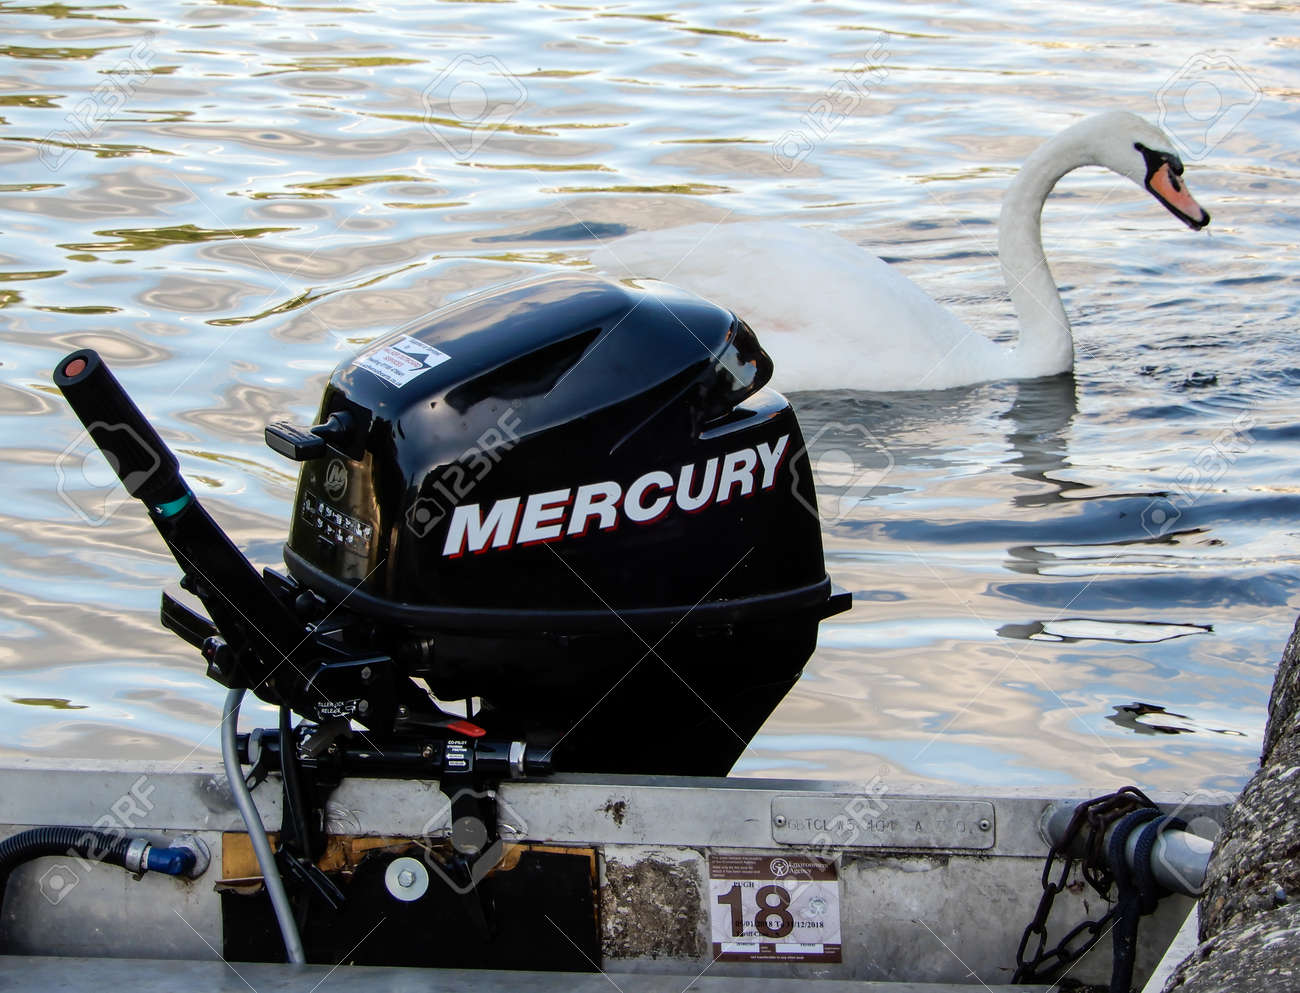 A Mercury 9 9 four stroke outboard motor and a mute swan on the